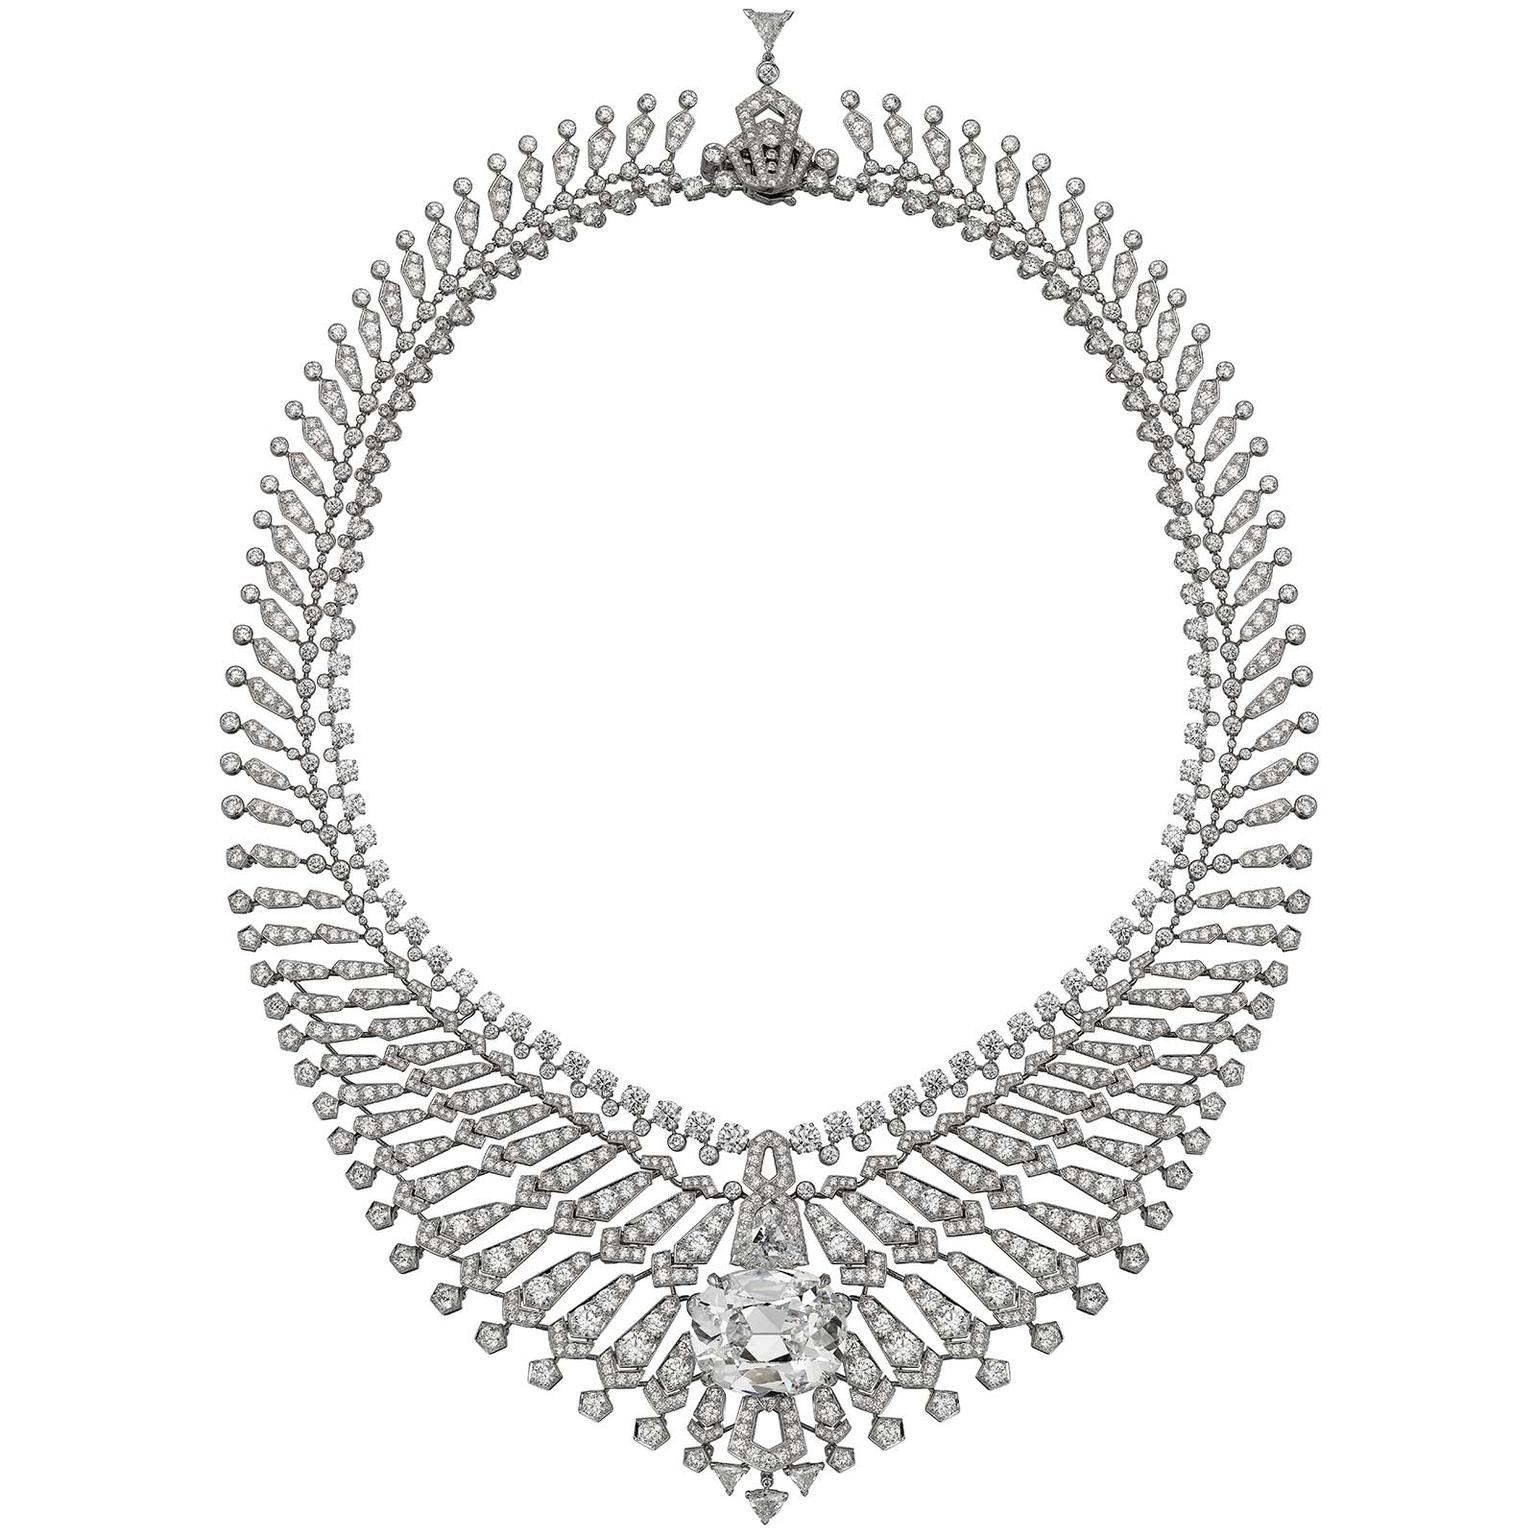 Cartier Étourdissant diamond necklace